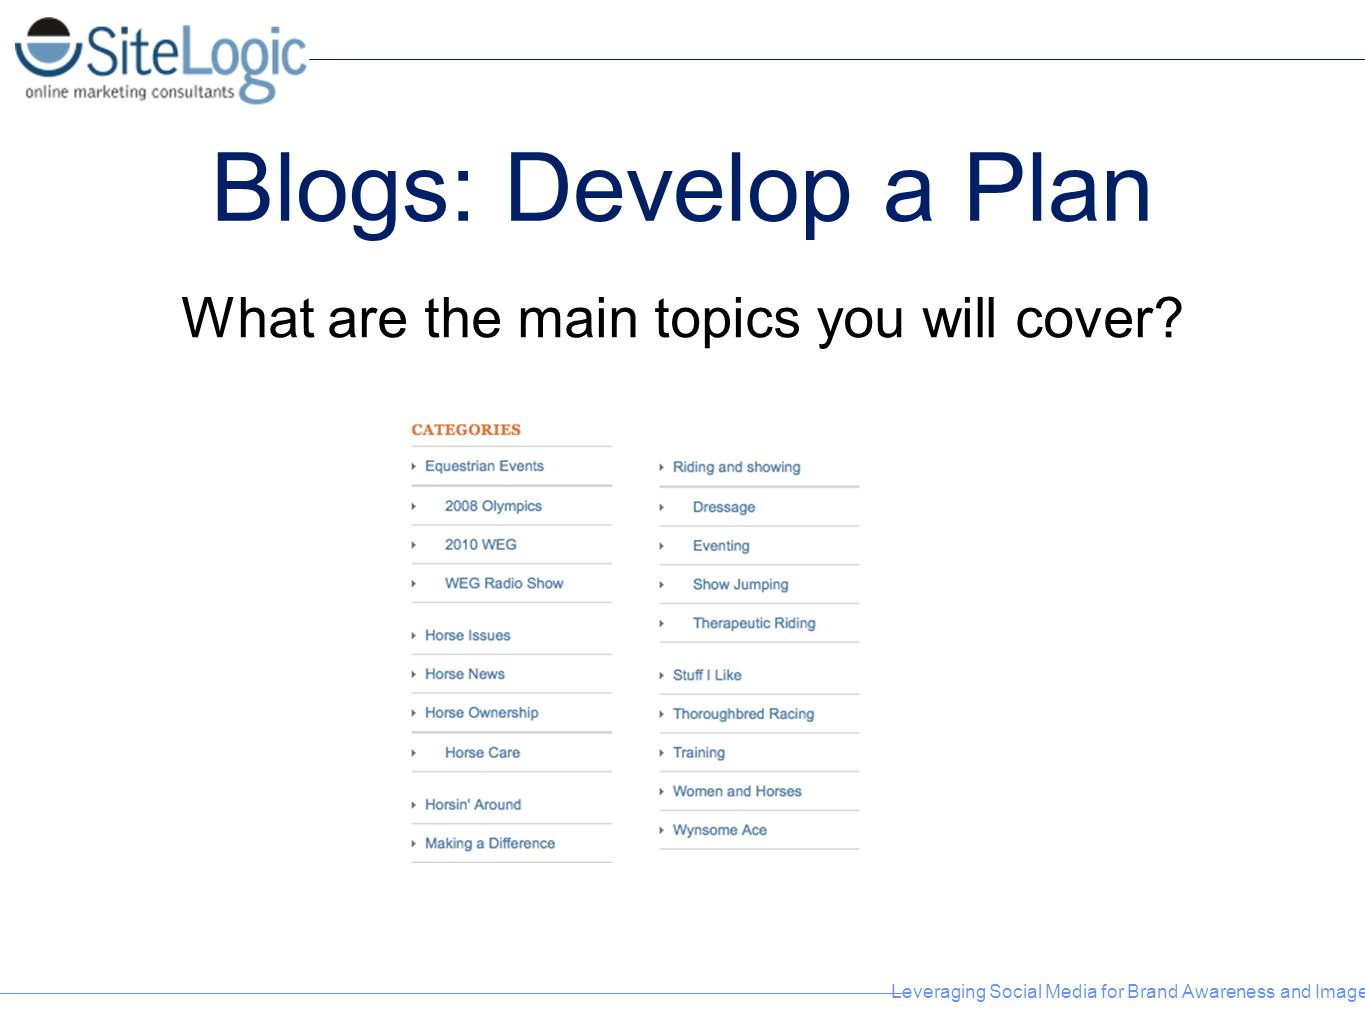 What are the main topics you will cover